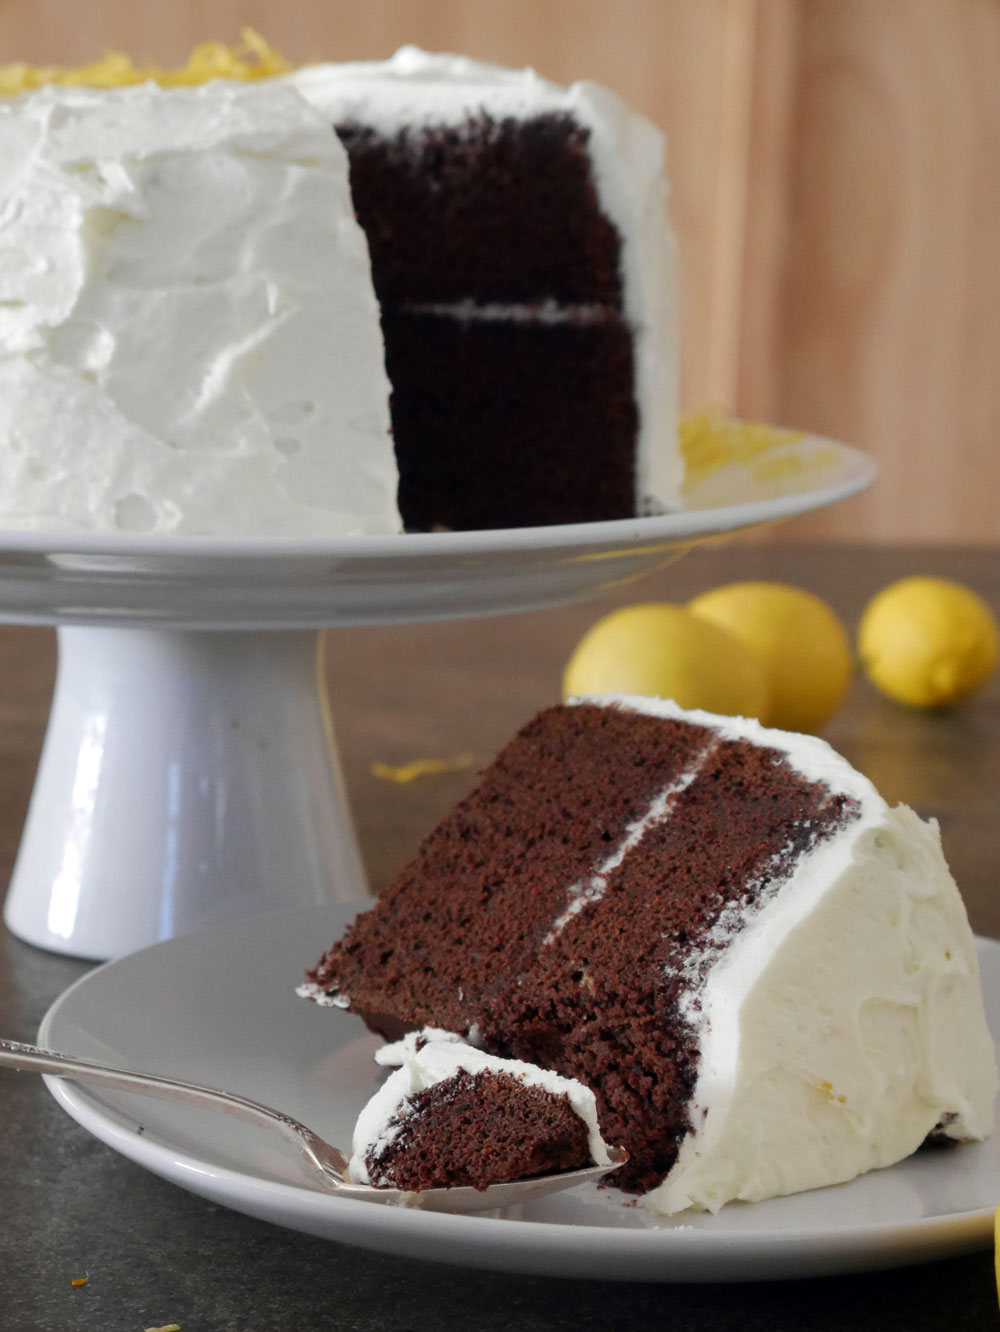 Chocolate cake with lemon buttercream frosting by Lila Wolff